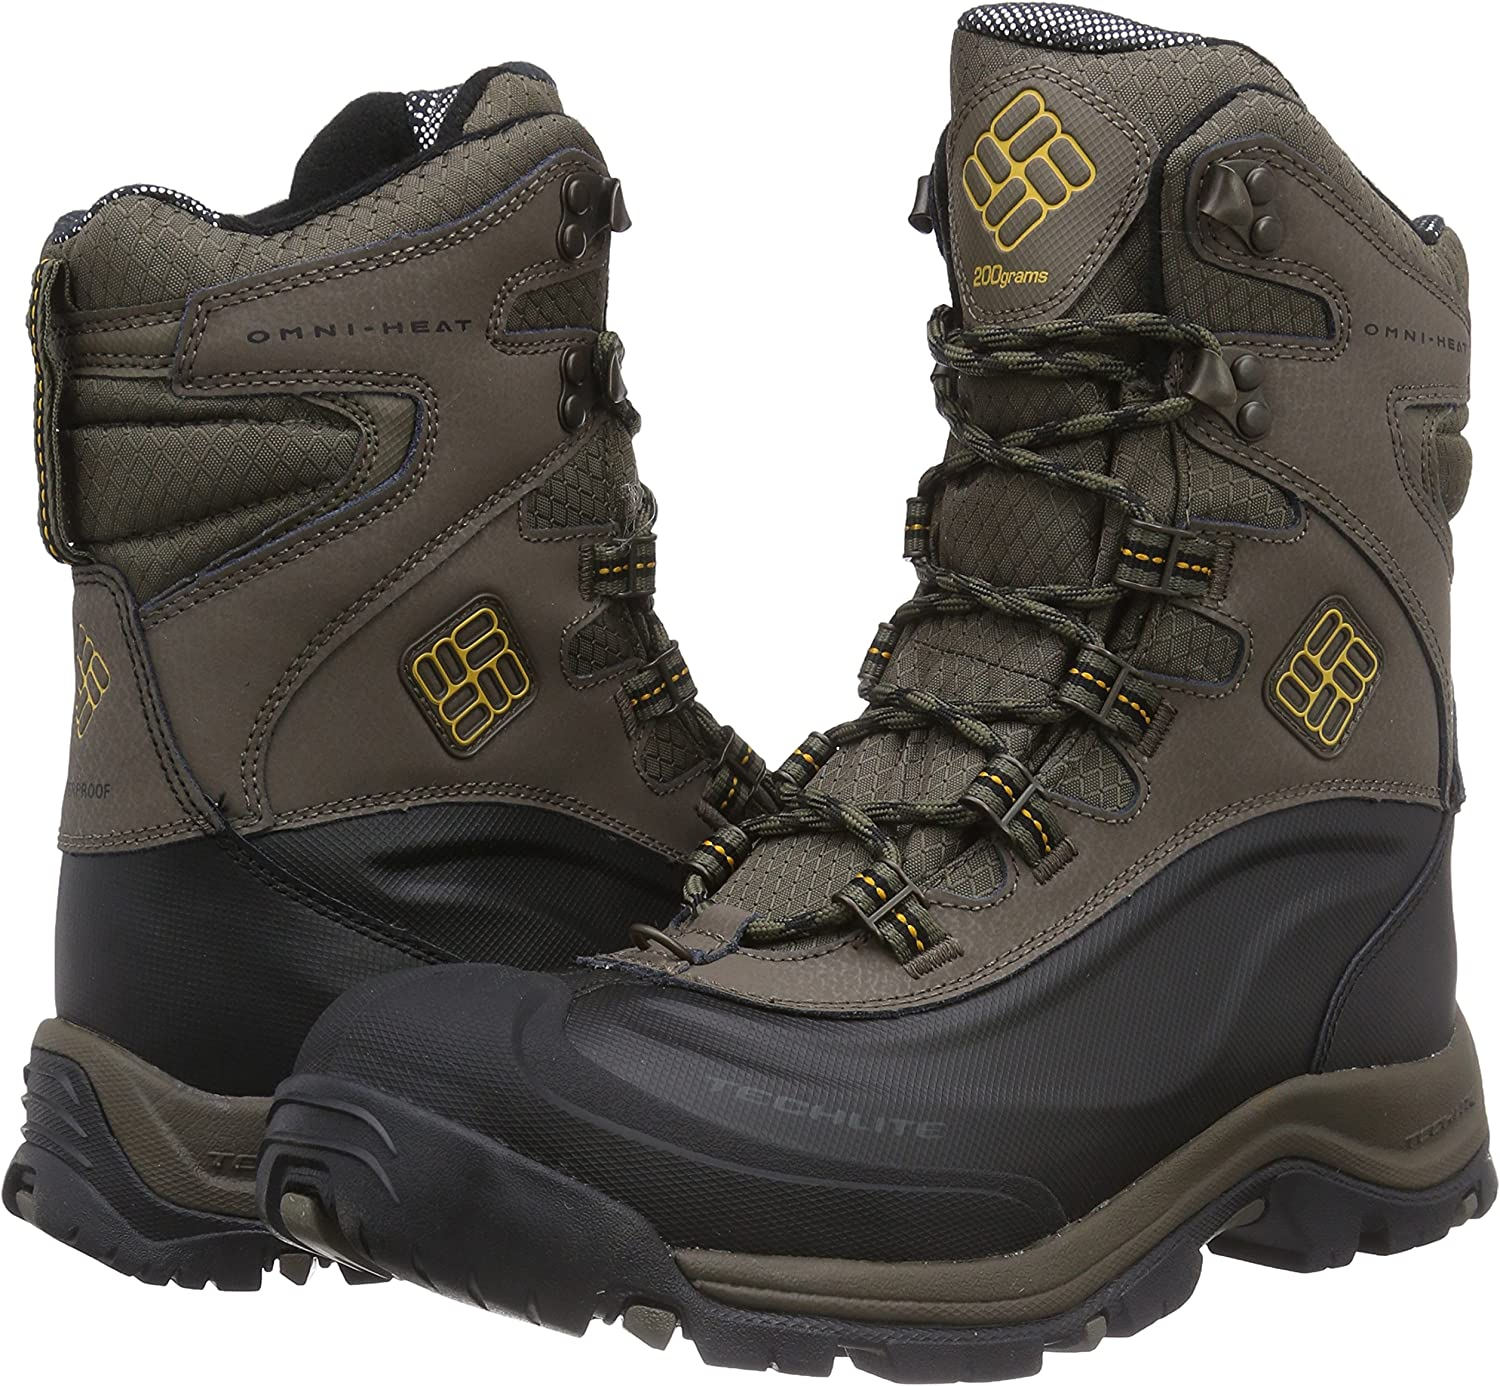 COLUMBIA MENS BUGABOOT PLUS 3 OMNI COLD WEATHER BOOT